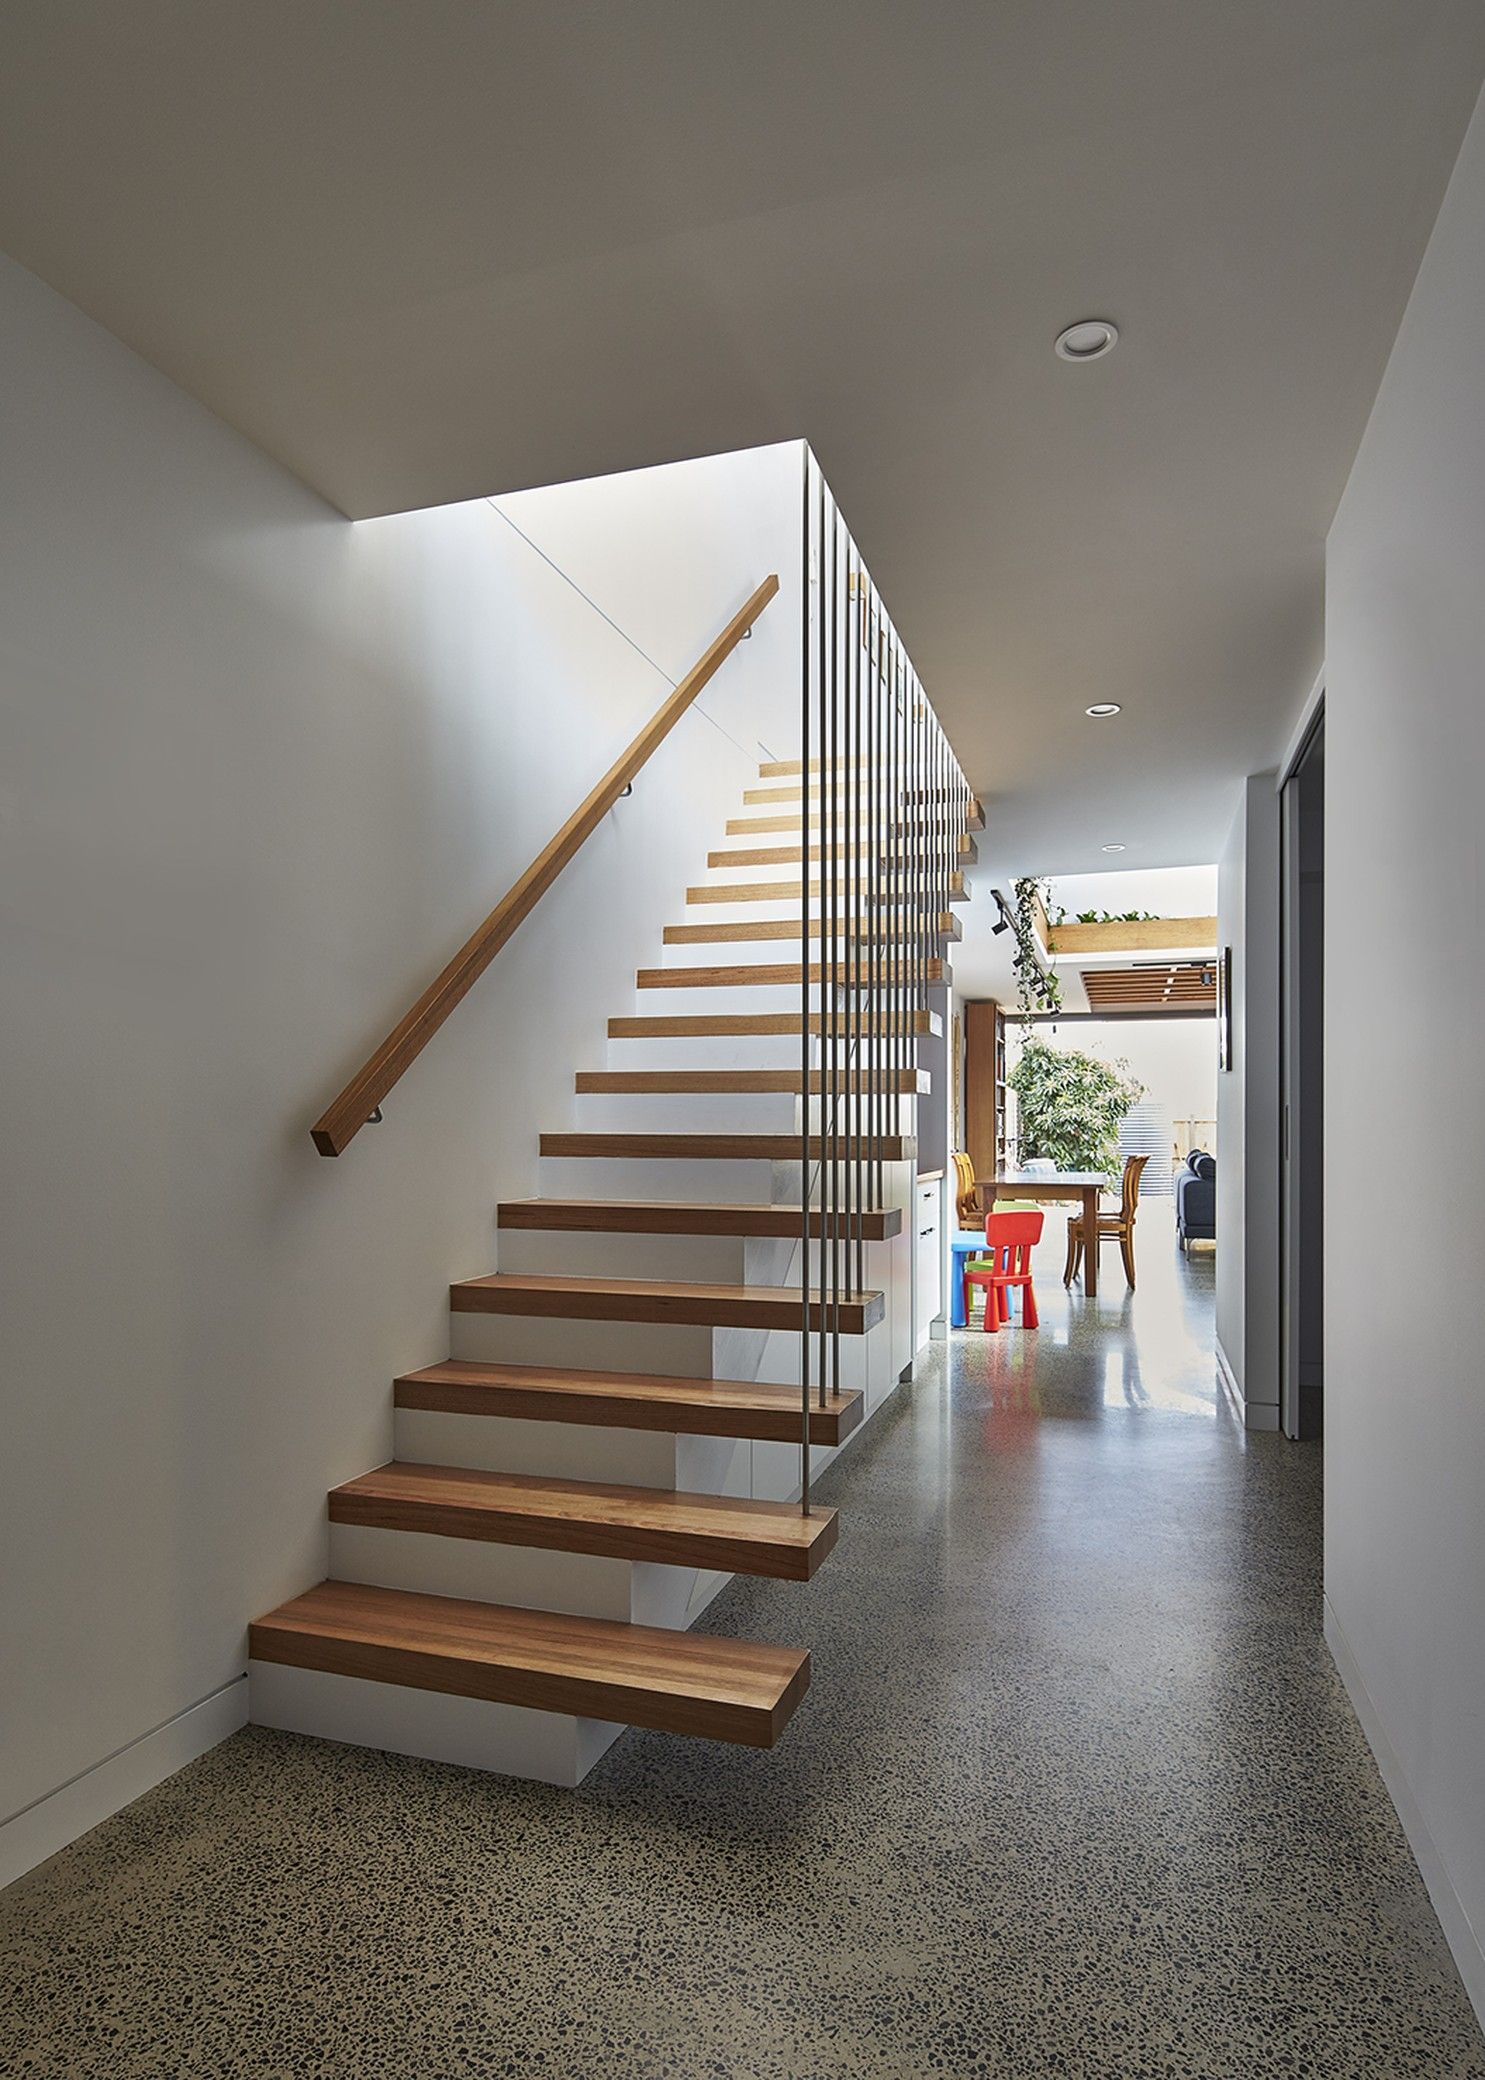 Beyond House Terrazzo Flooring Wooden Staircases Beautiful